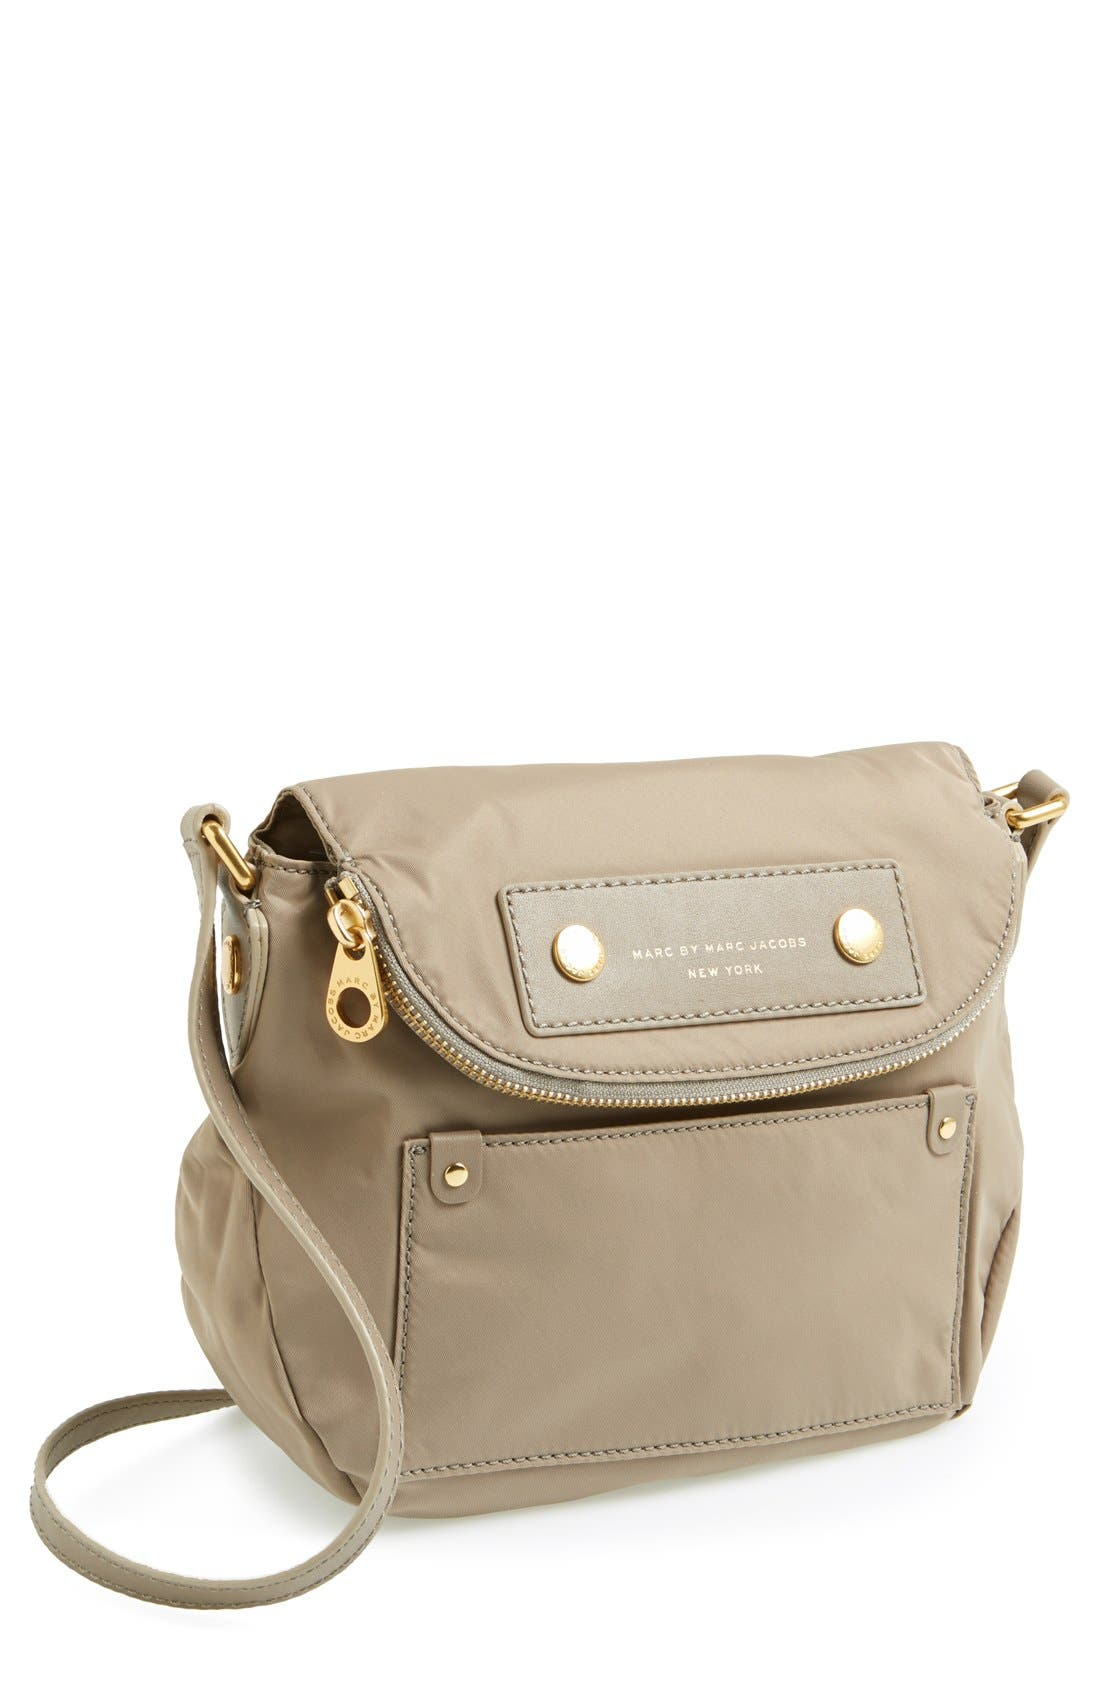 Main Image - MARC BY MARC JACOBS 'Preppy Nylon Natasha - Mini' Crossbody Bag